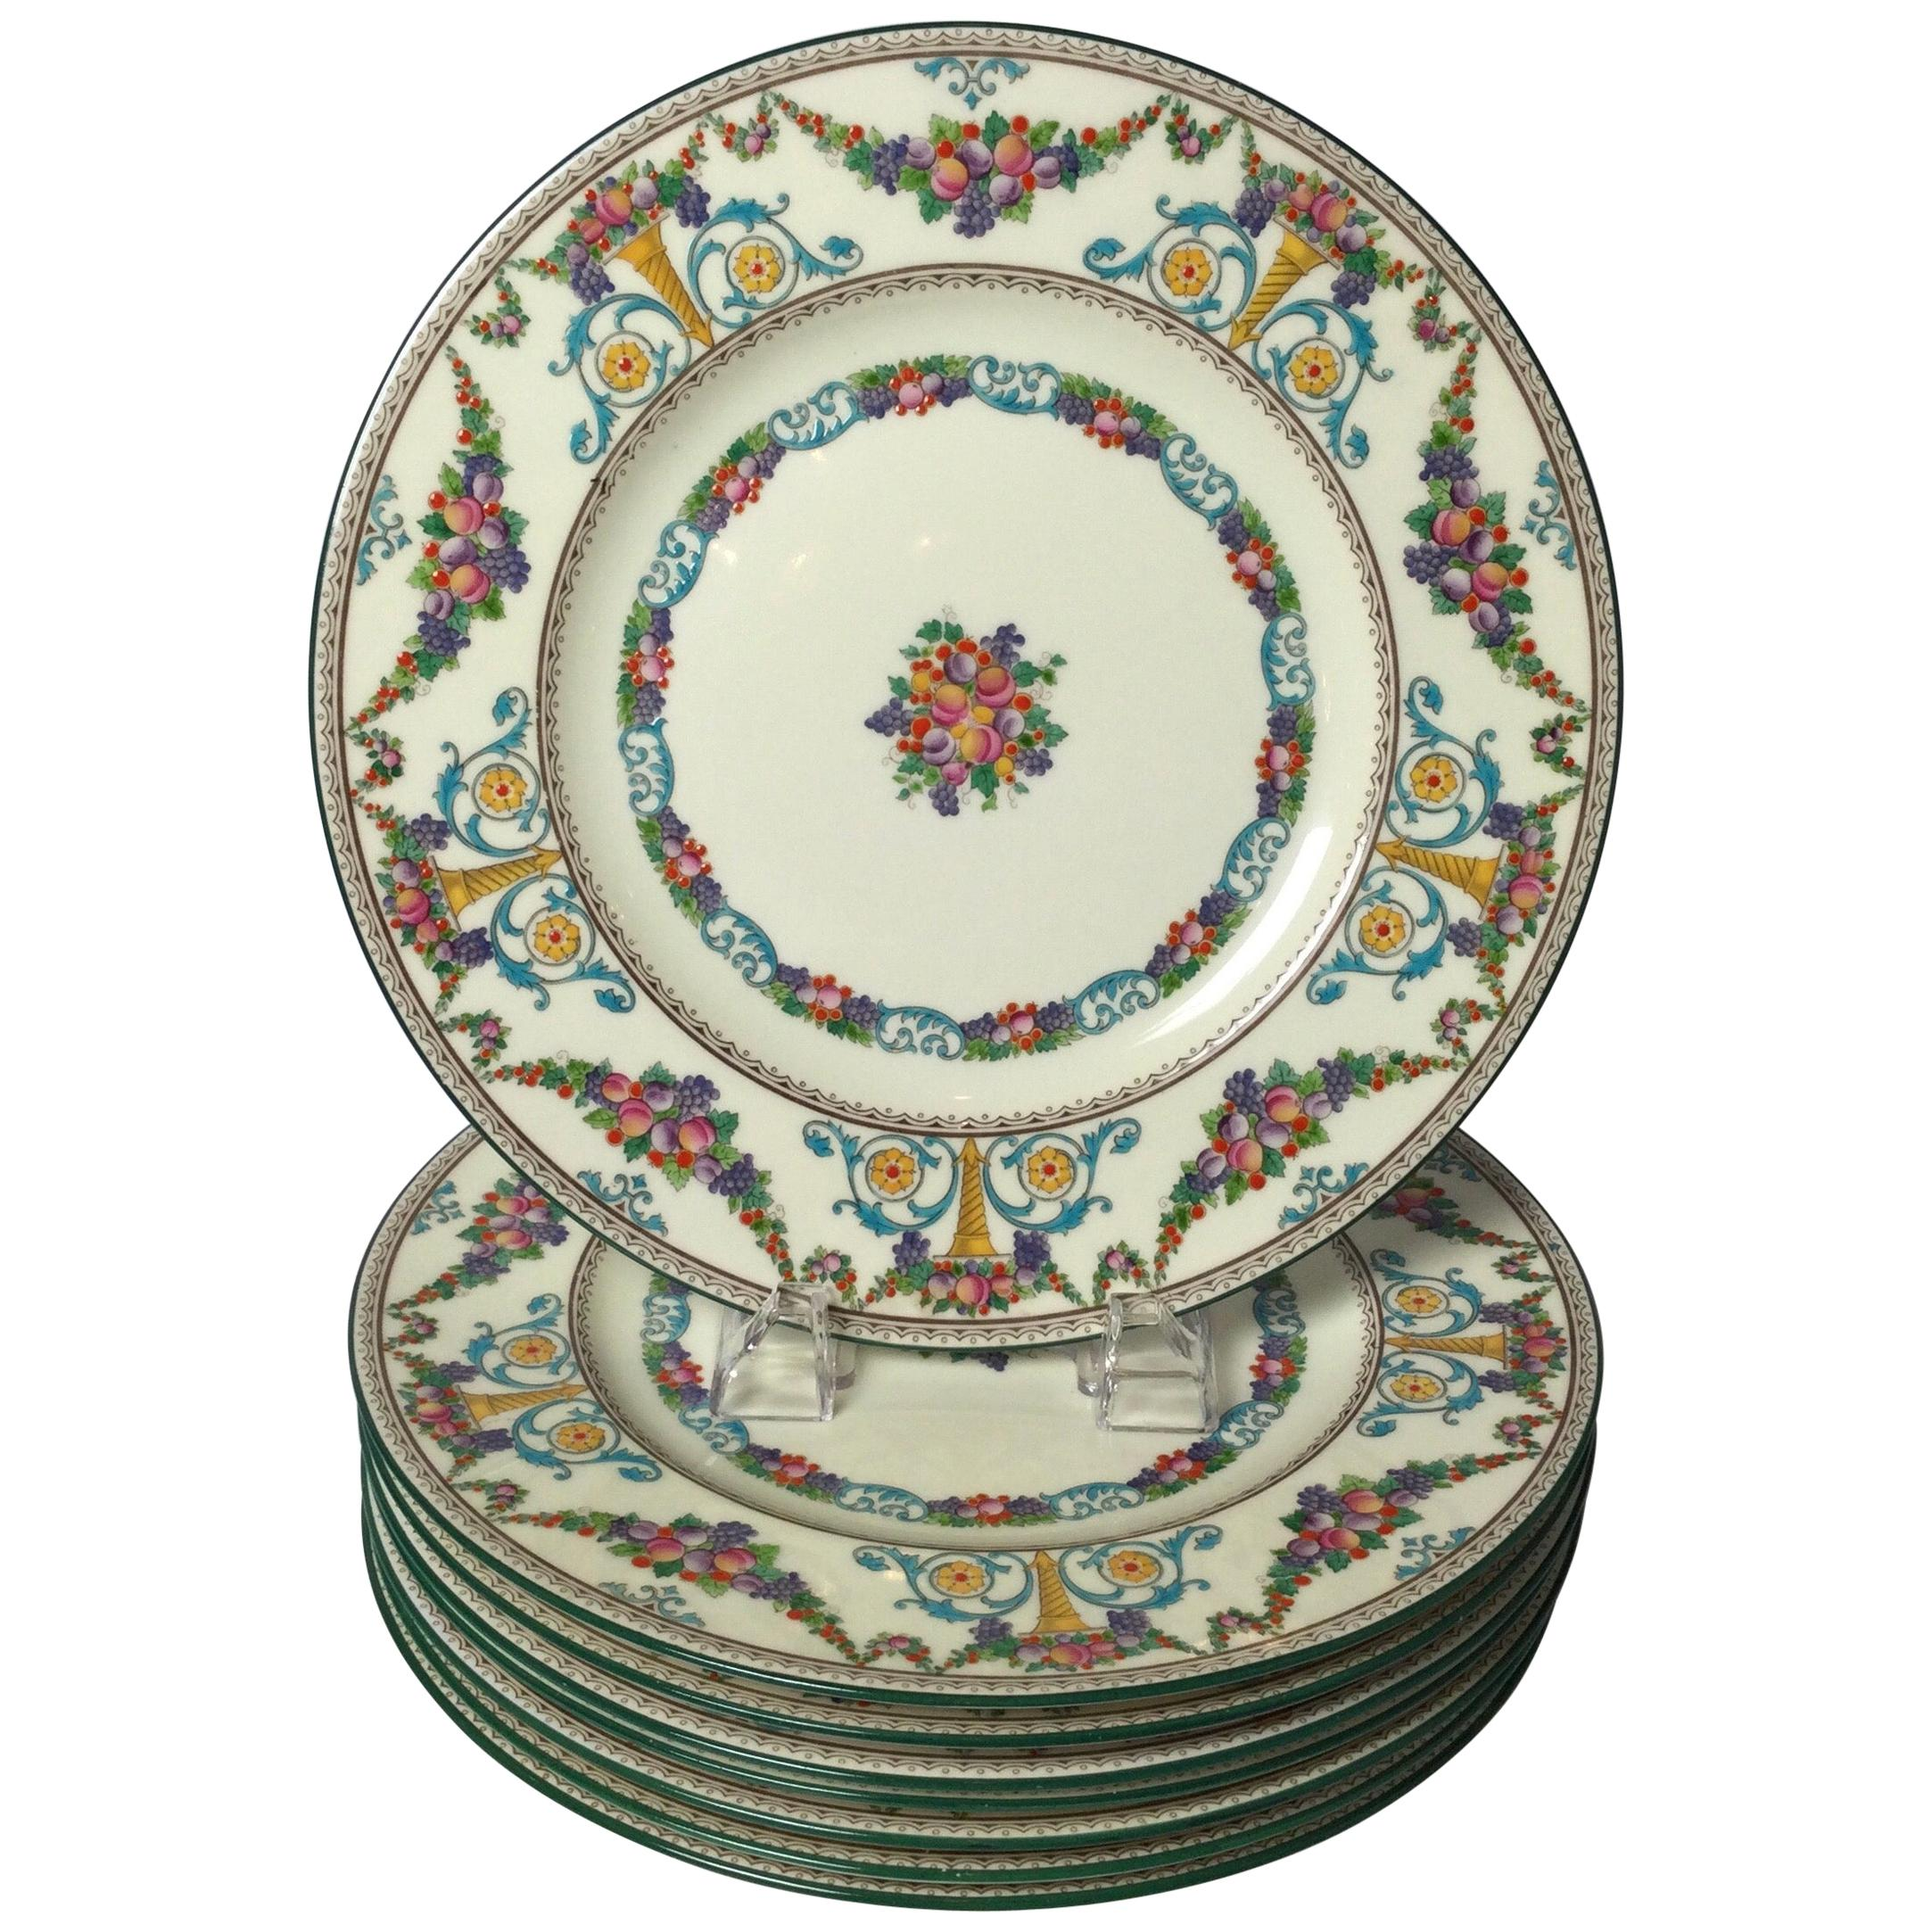 Set of 8 Hand Enameled English Plates by Wedgwood, 1930s